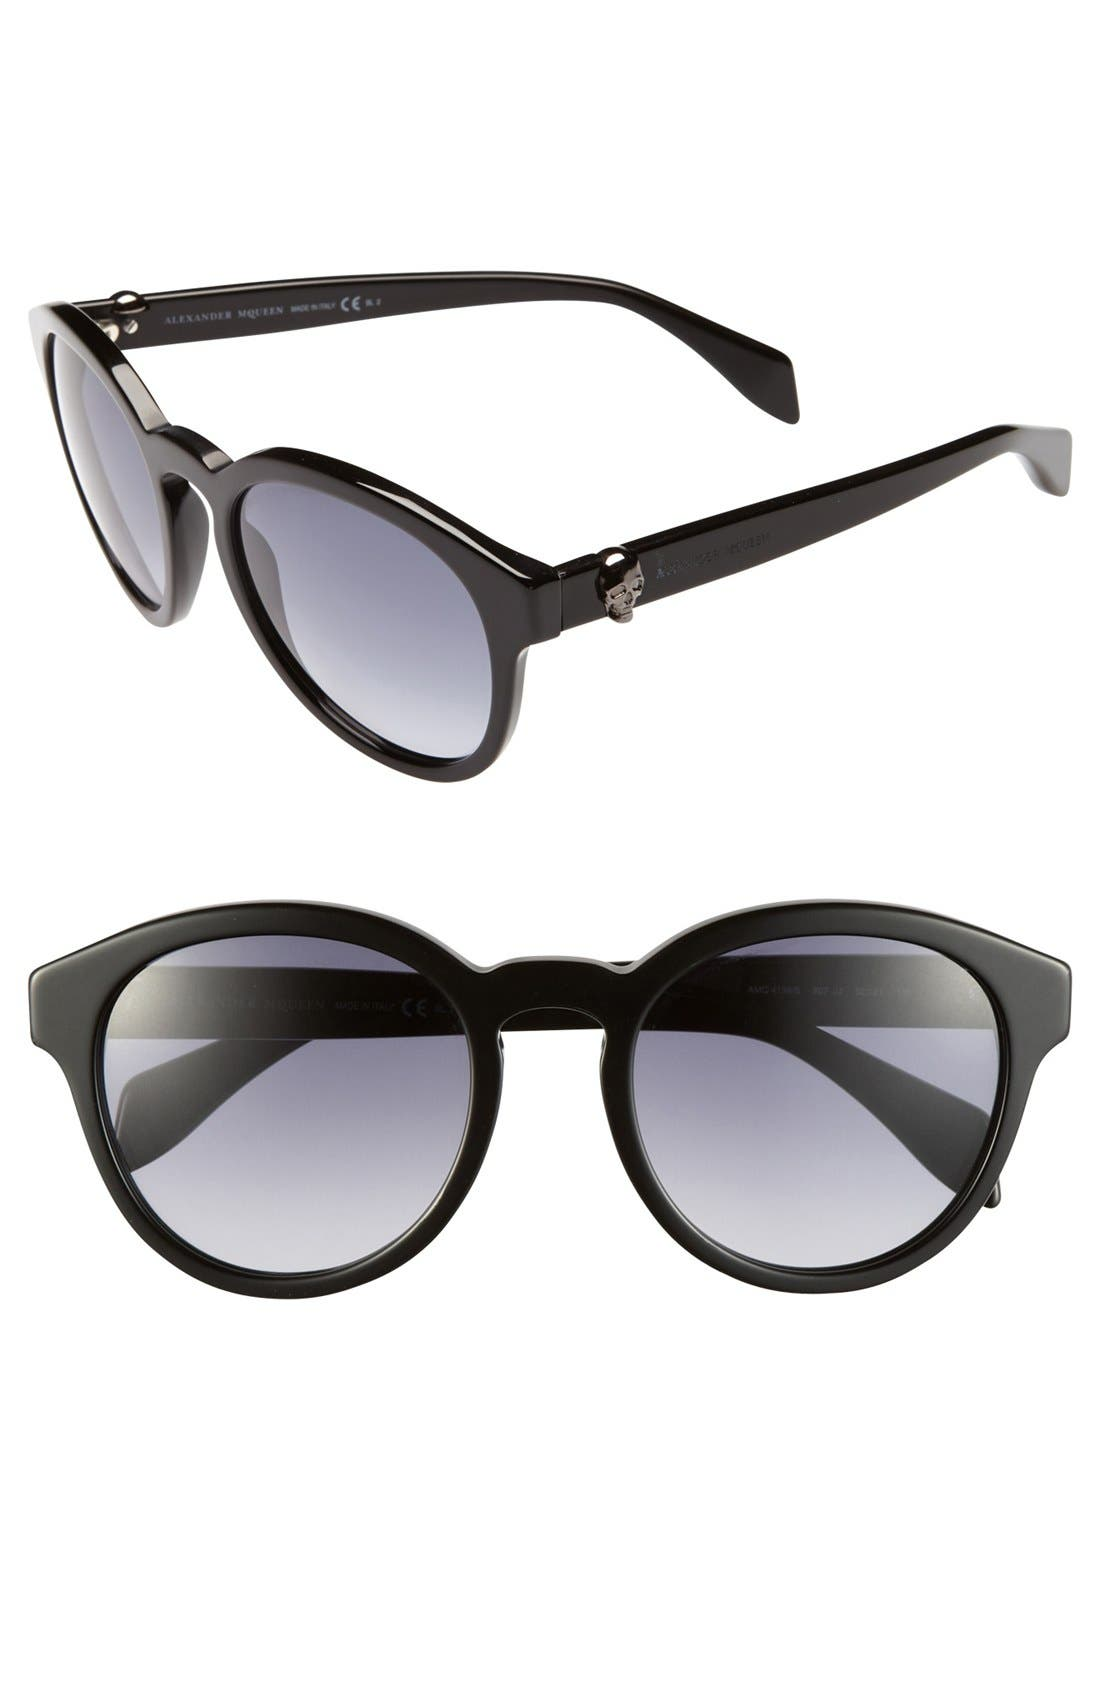 Alternate Image 1 Selected - Alexander McQueen 52mm Sunglasses